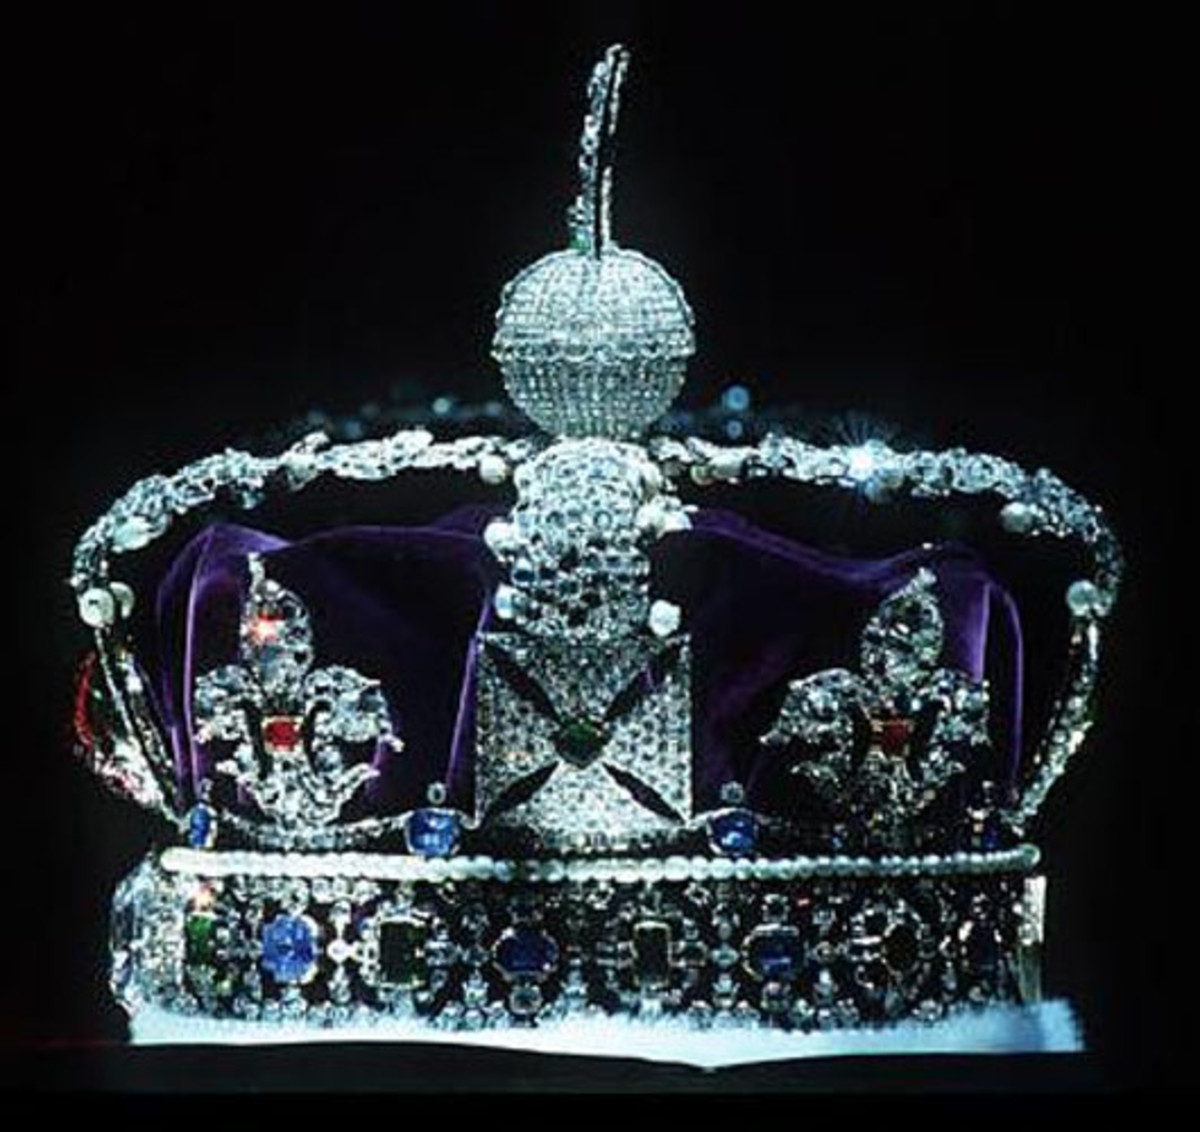 Kohinoor embedded in Imperial State Crown